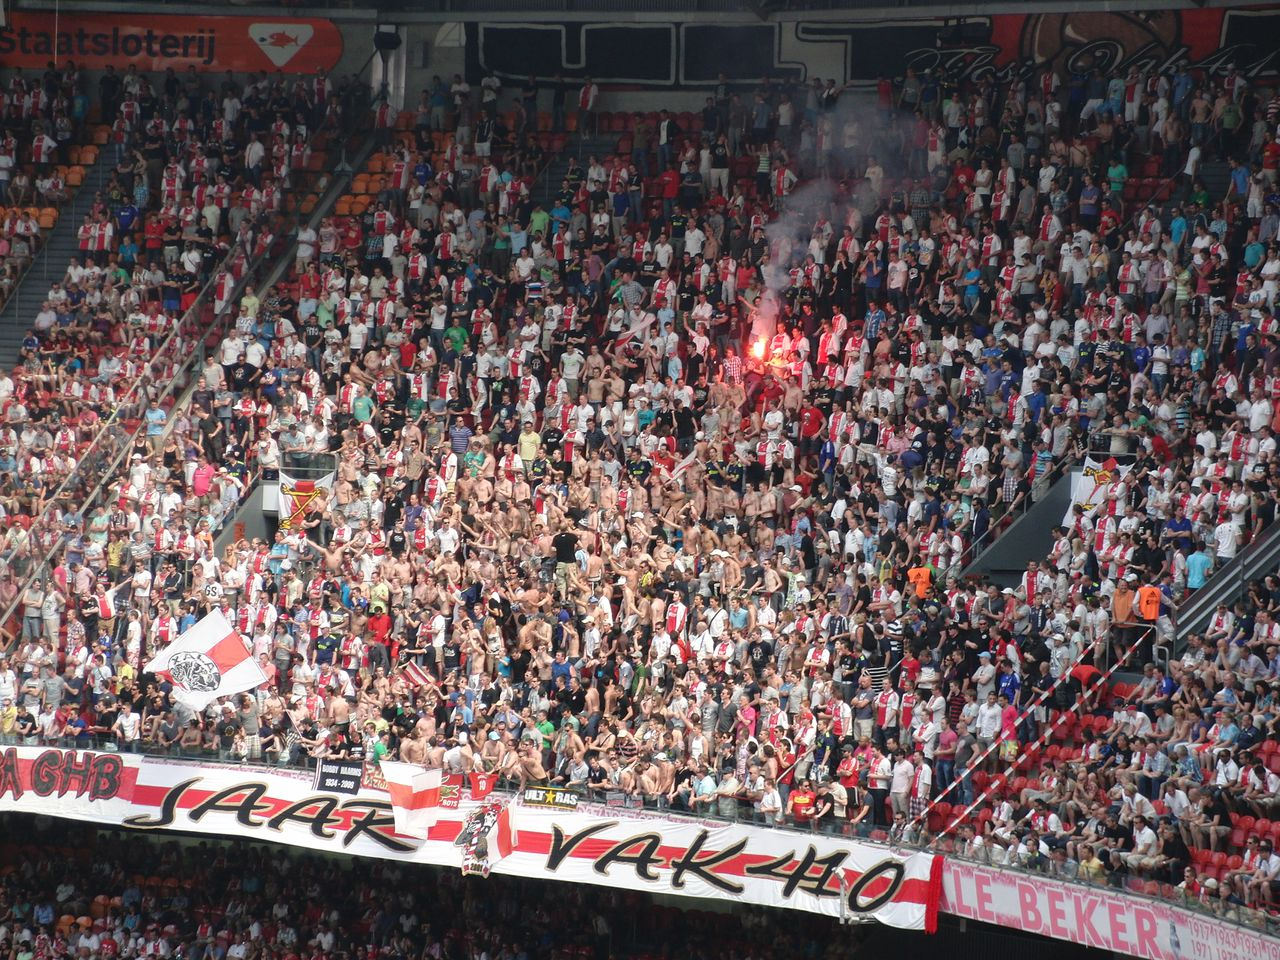 English: Vak410 in action during the game Ajax - Excelsior (4-1) Date 24 April 2011(2011-04-24) Source Own work Author Danbu14